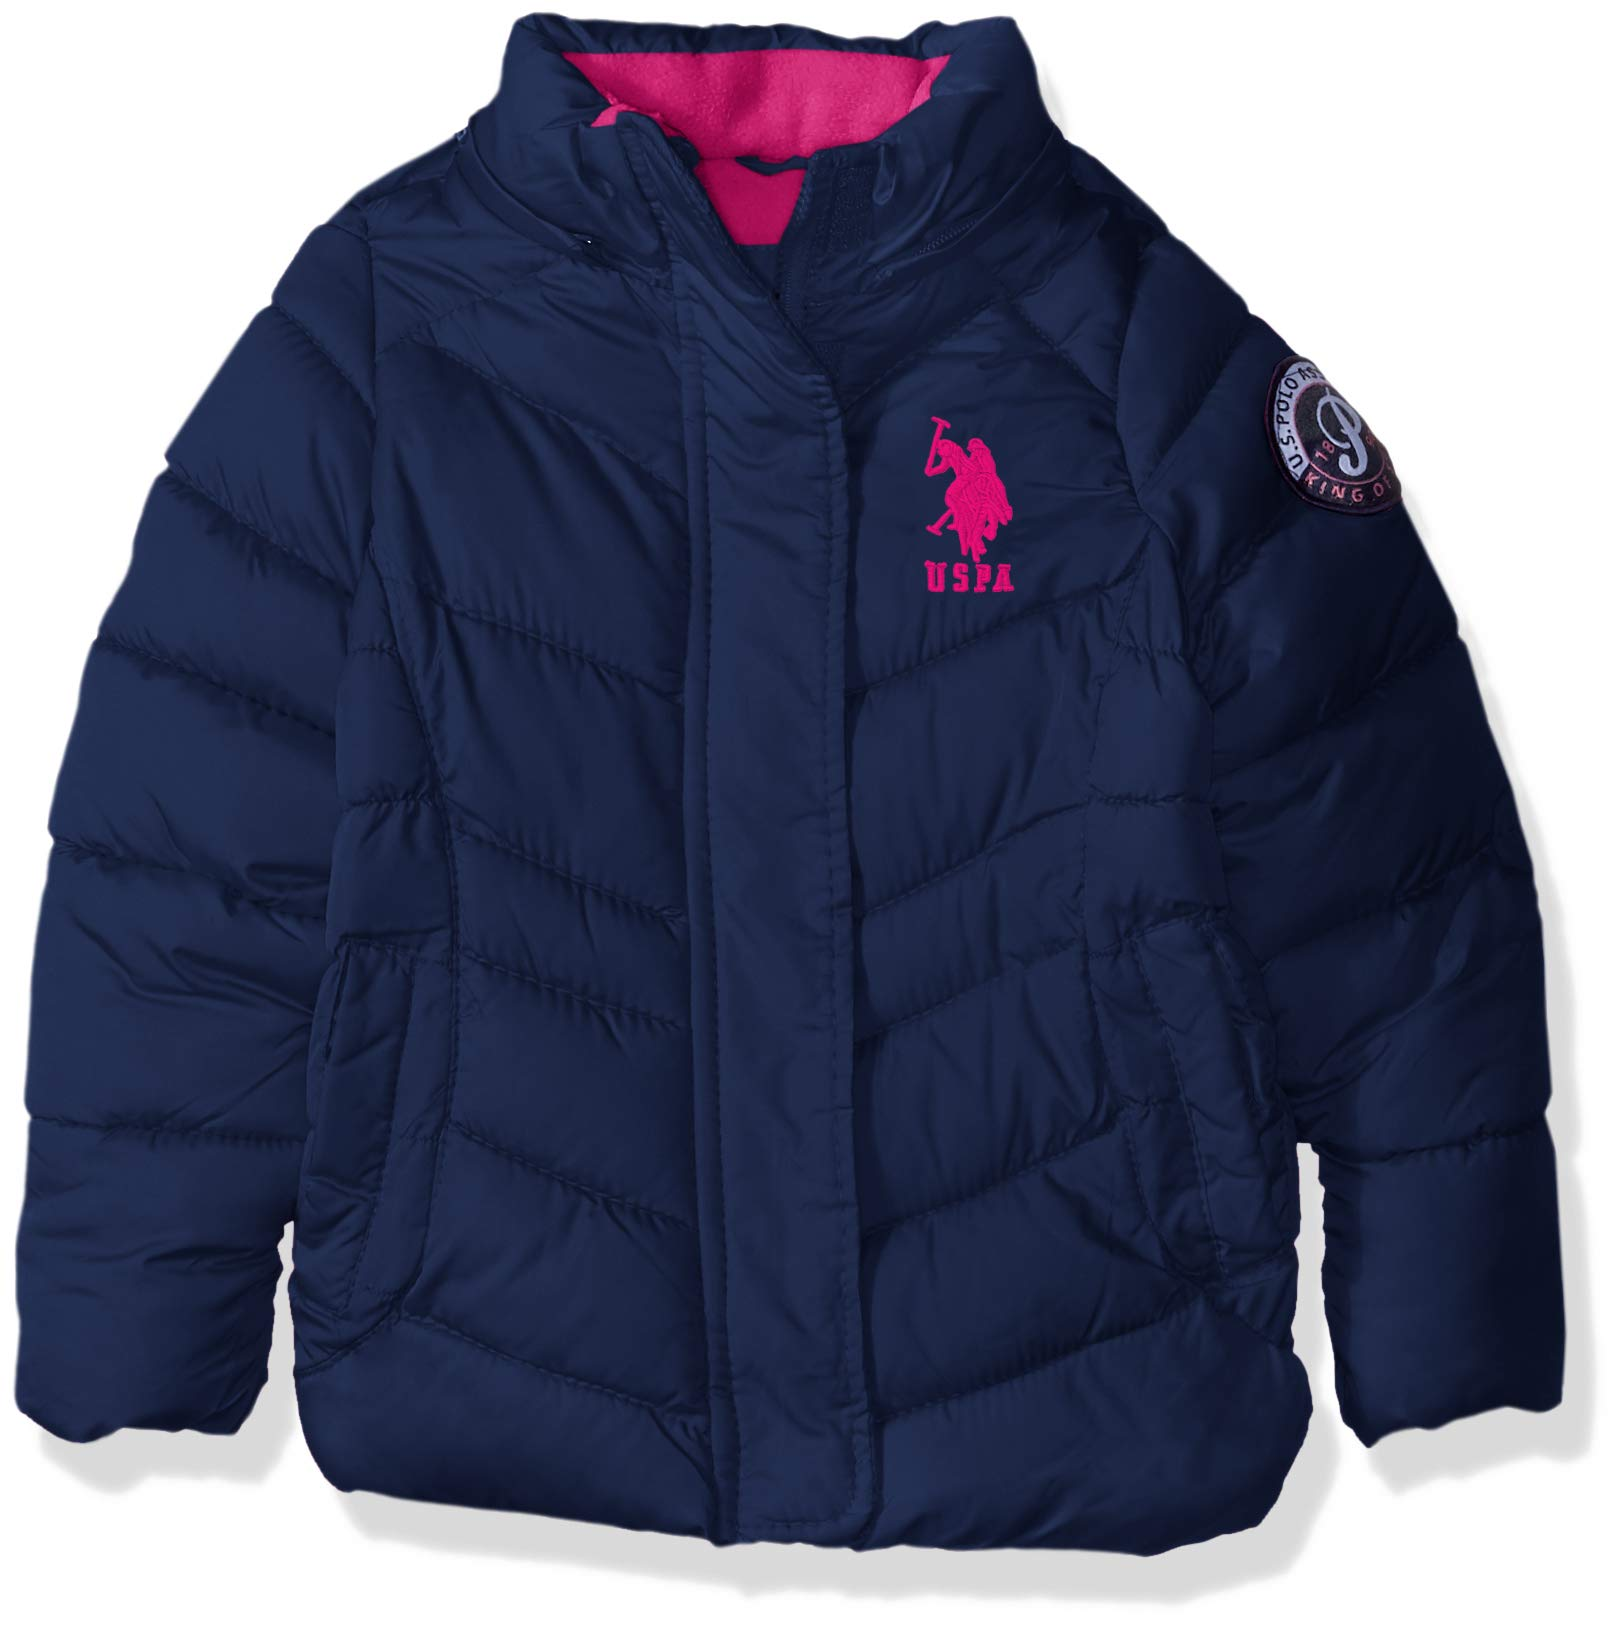 US Polo Association Girls' Little Hooded Bubble Jacket with Piping Detail, Navy, 6X by U.S. Polo Assn. (Image #3)